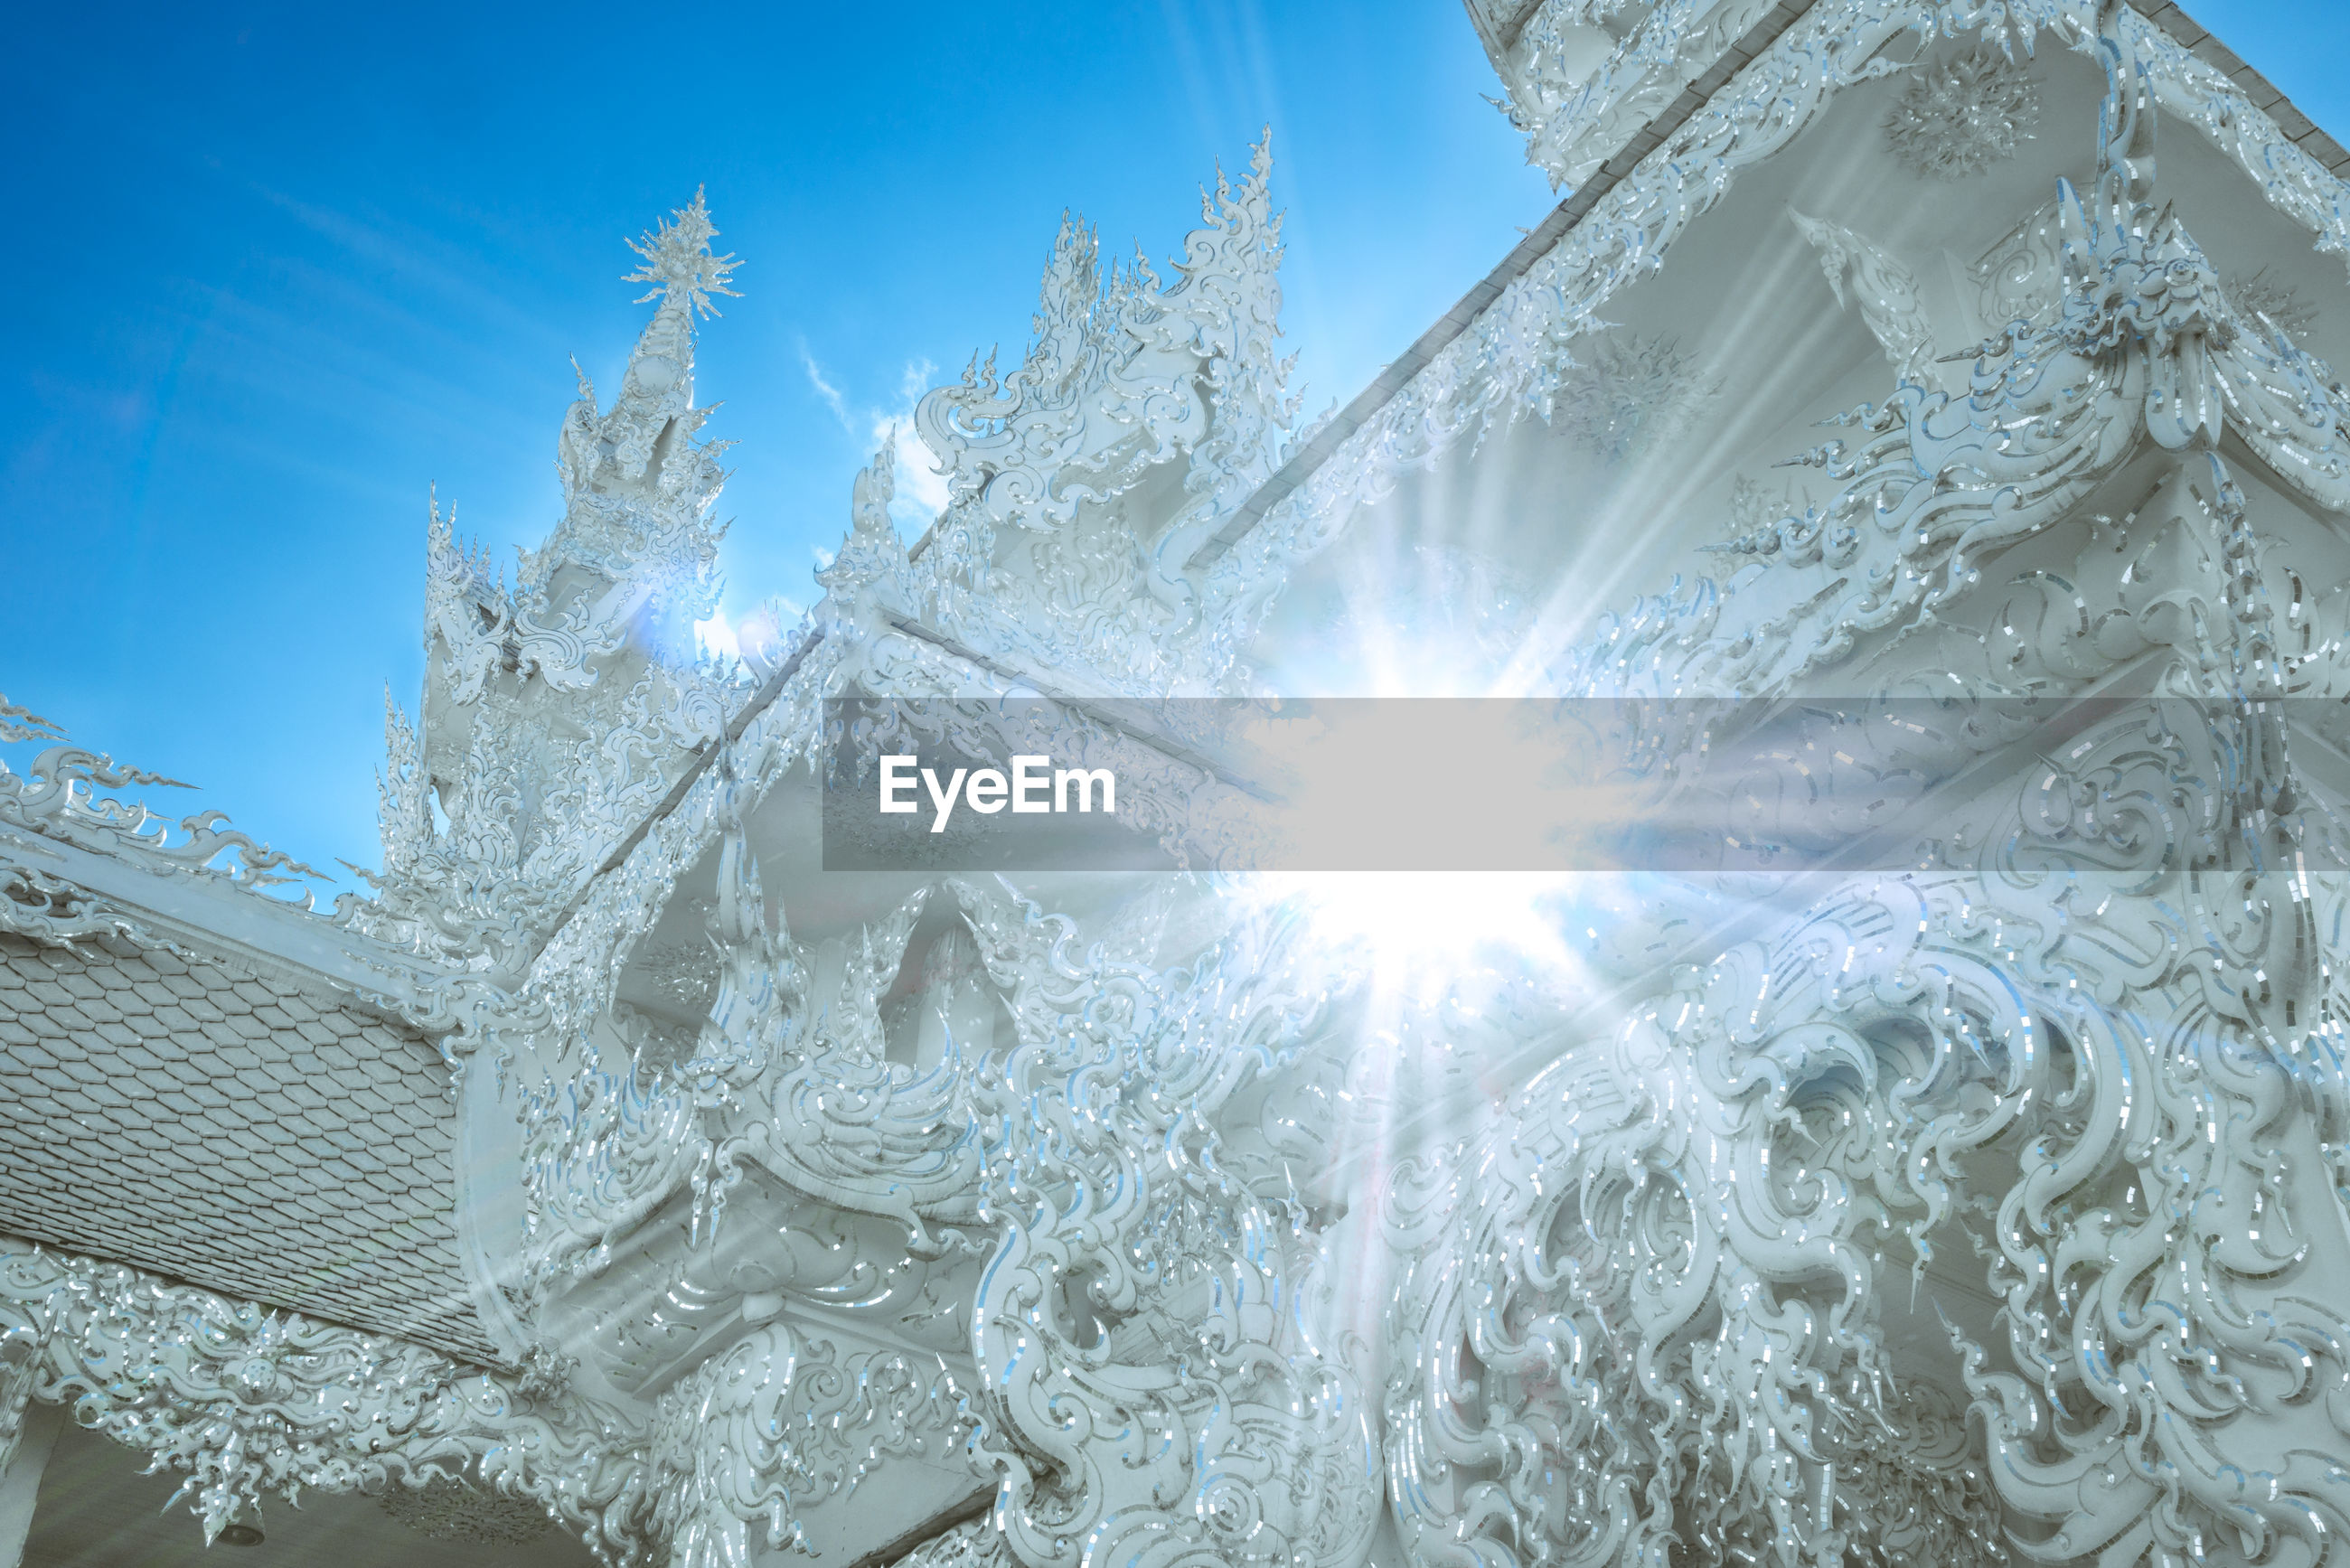 LOW ANGLE VIEW OF FROZEN BUILDING AGAINST SKY